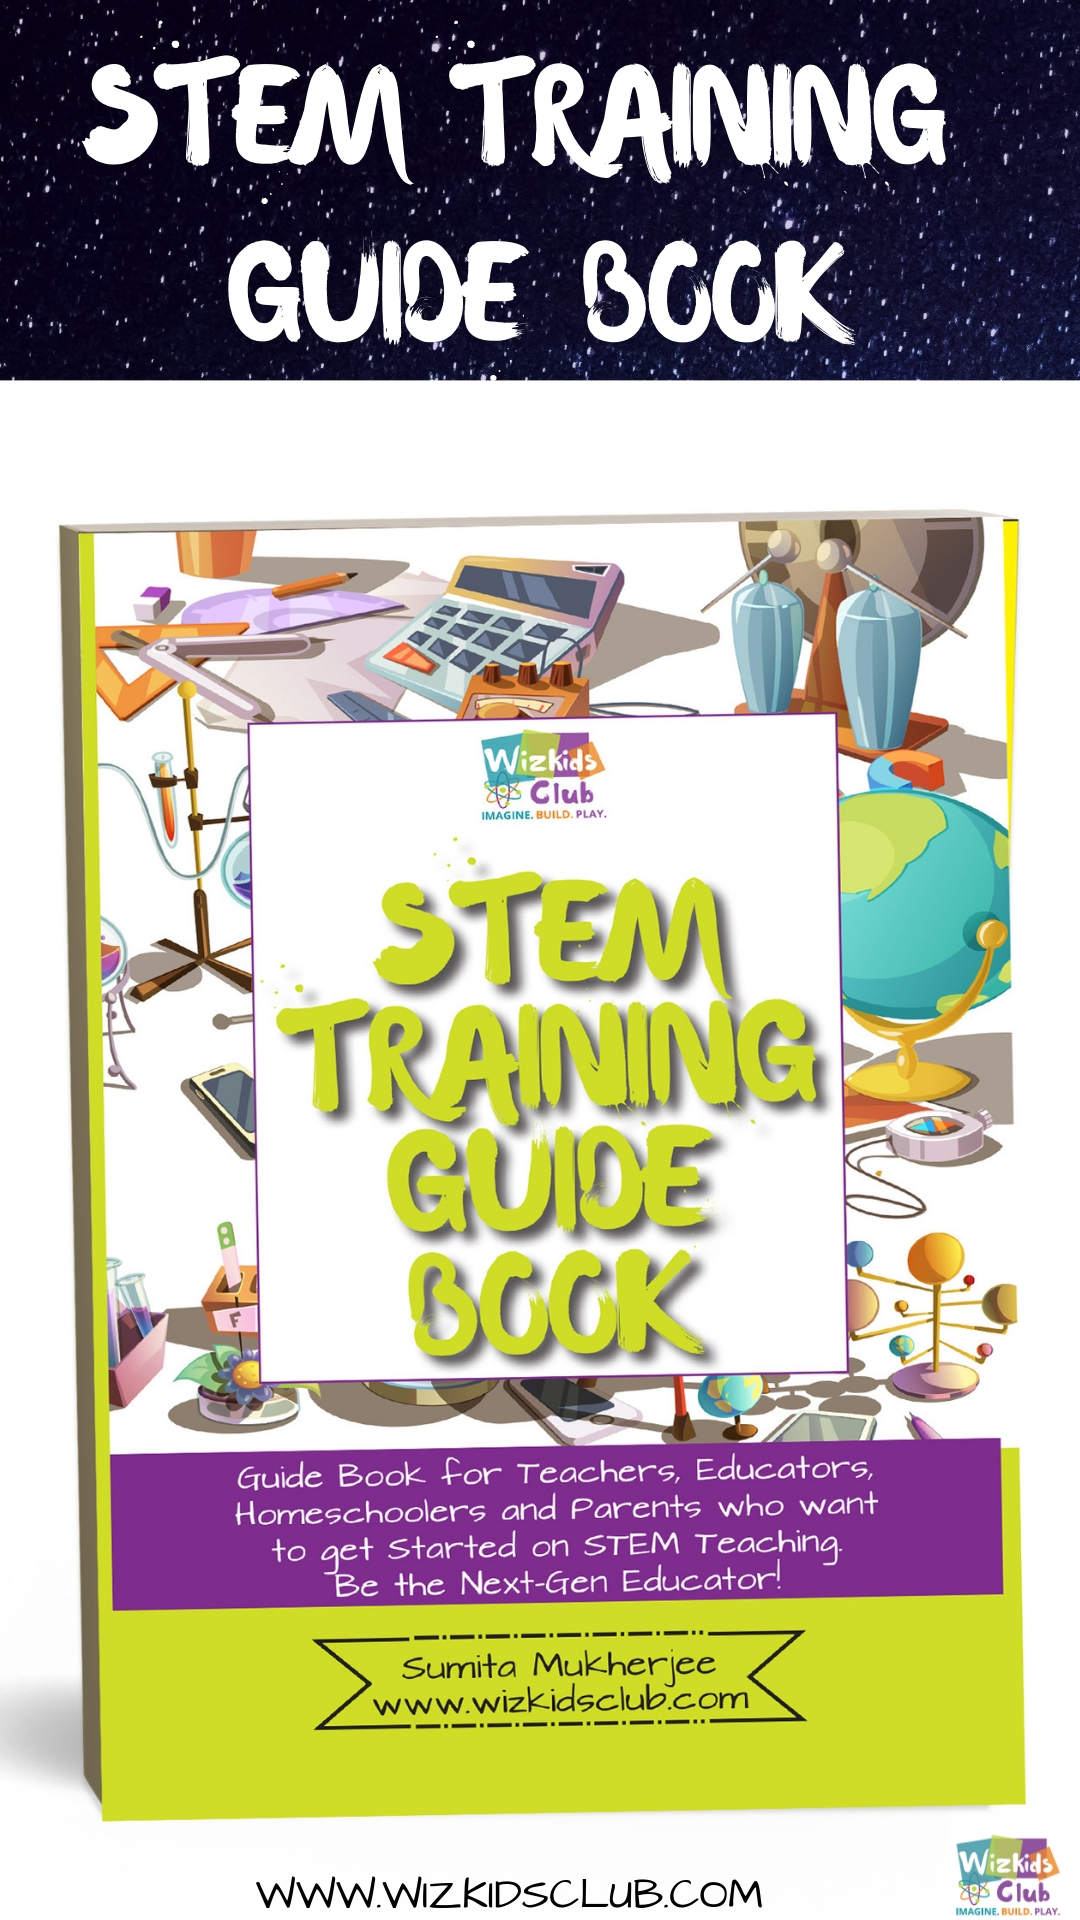 STEM TRAINING FOR EDUCATORS IN LESS THAN A DOLLAR!